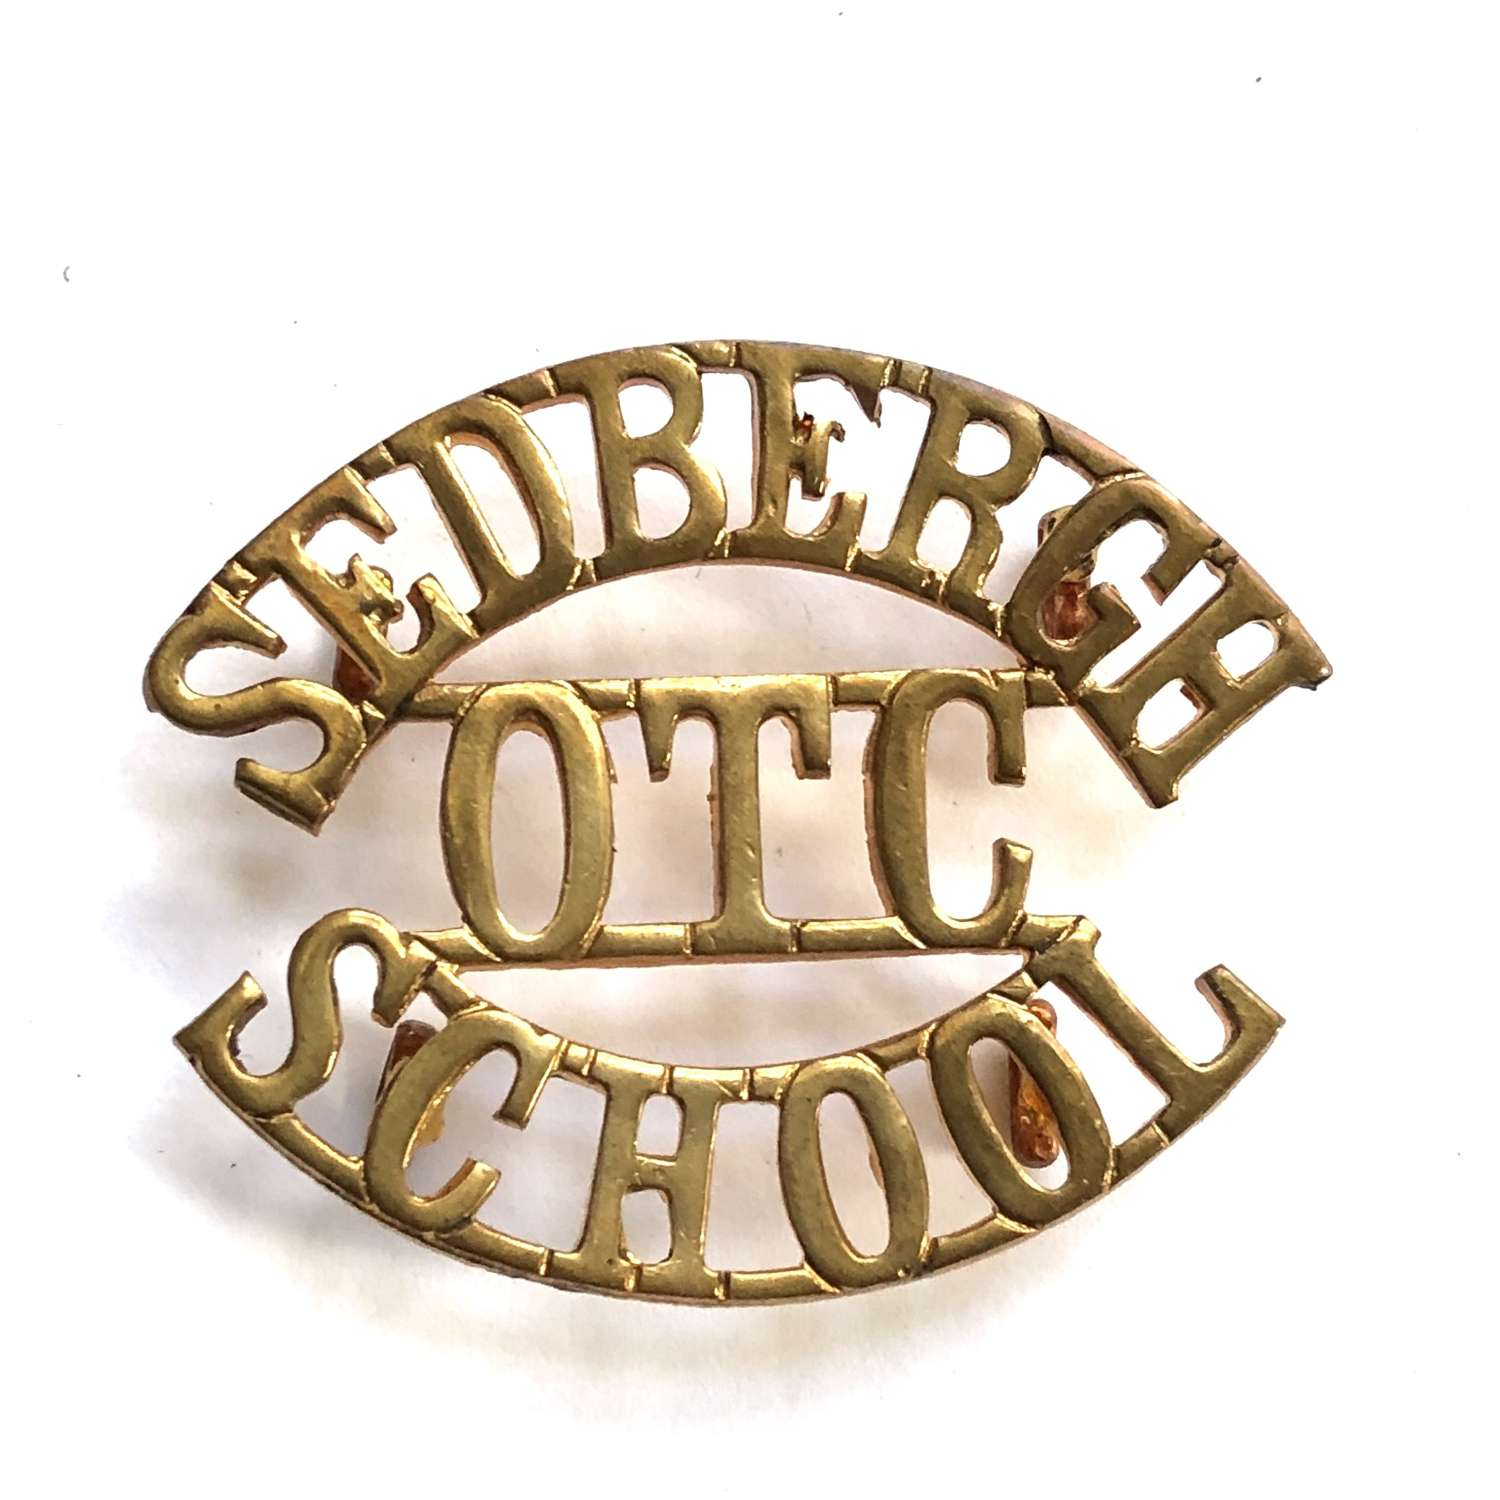 SEDBERGH  / OTC / SCHOOL Yorkshire shouder title title